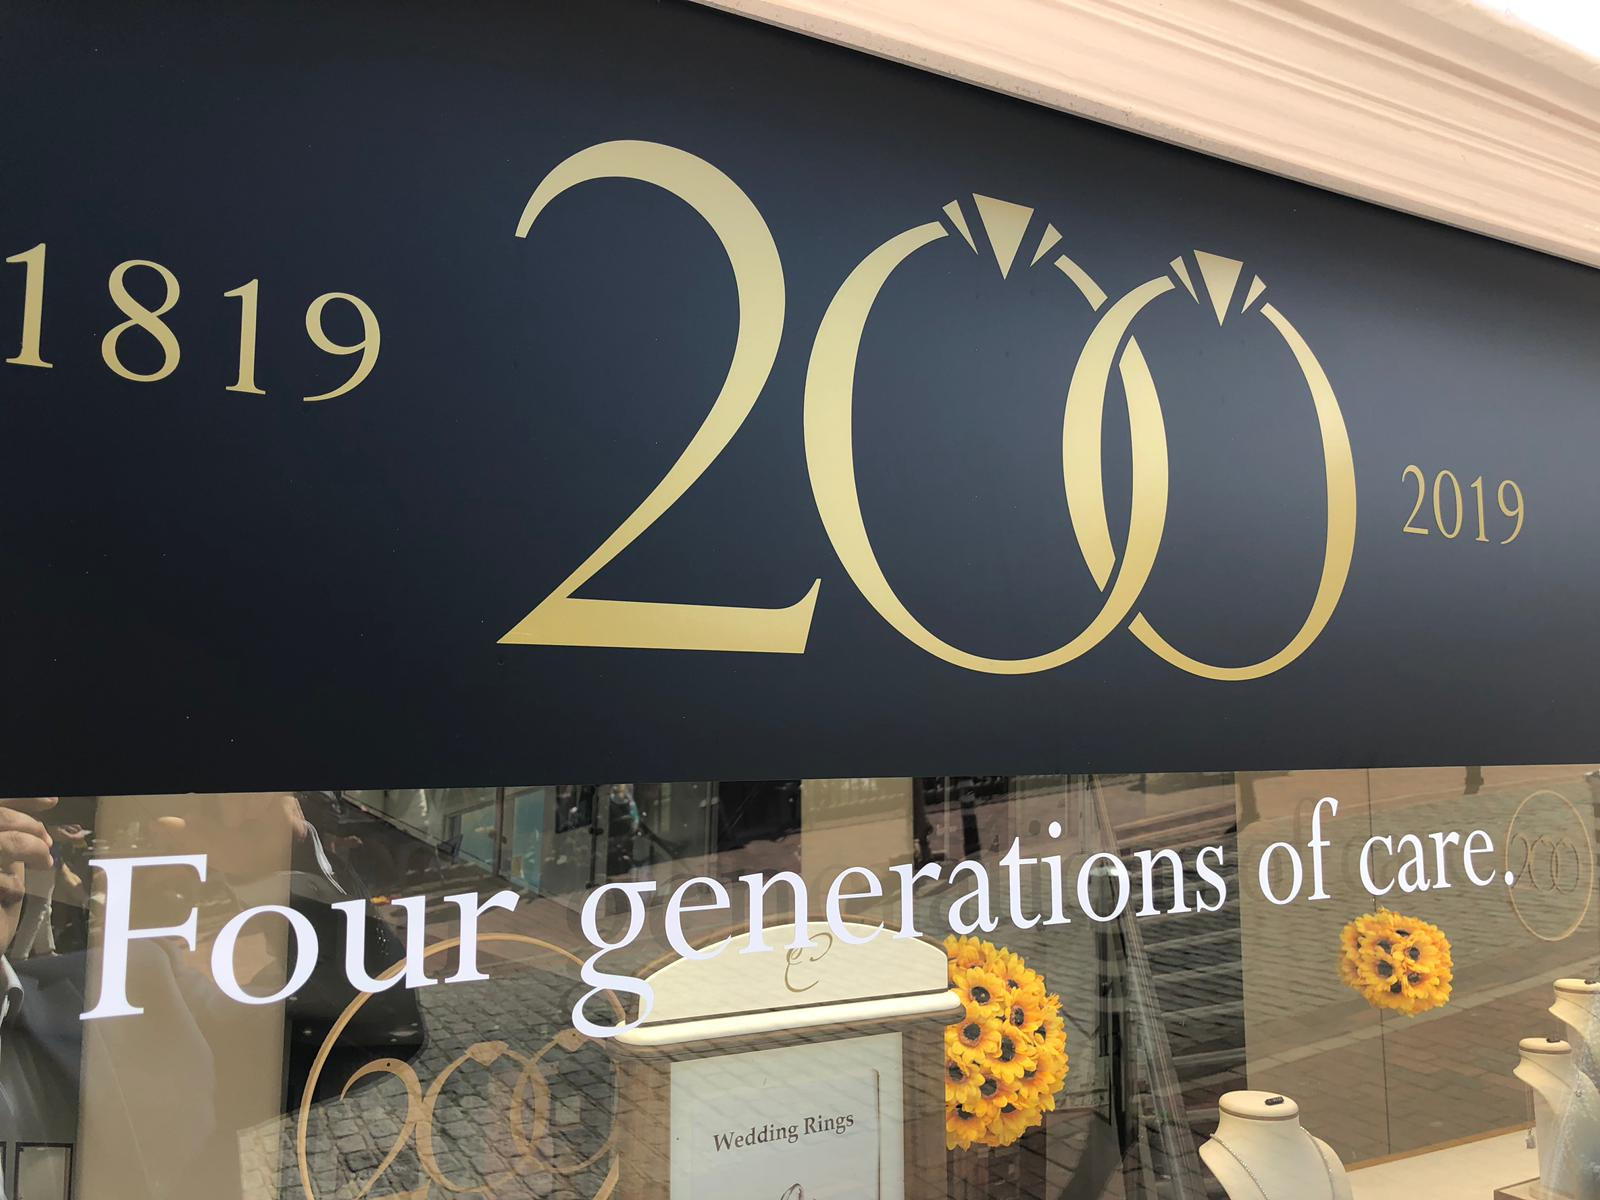 200 years in lewes